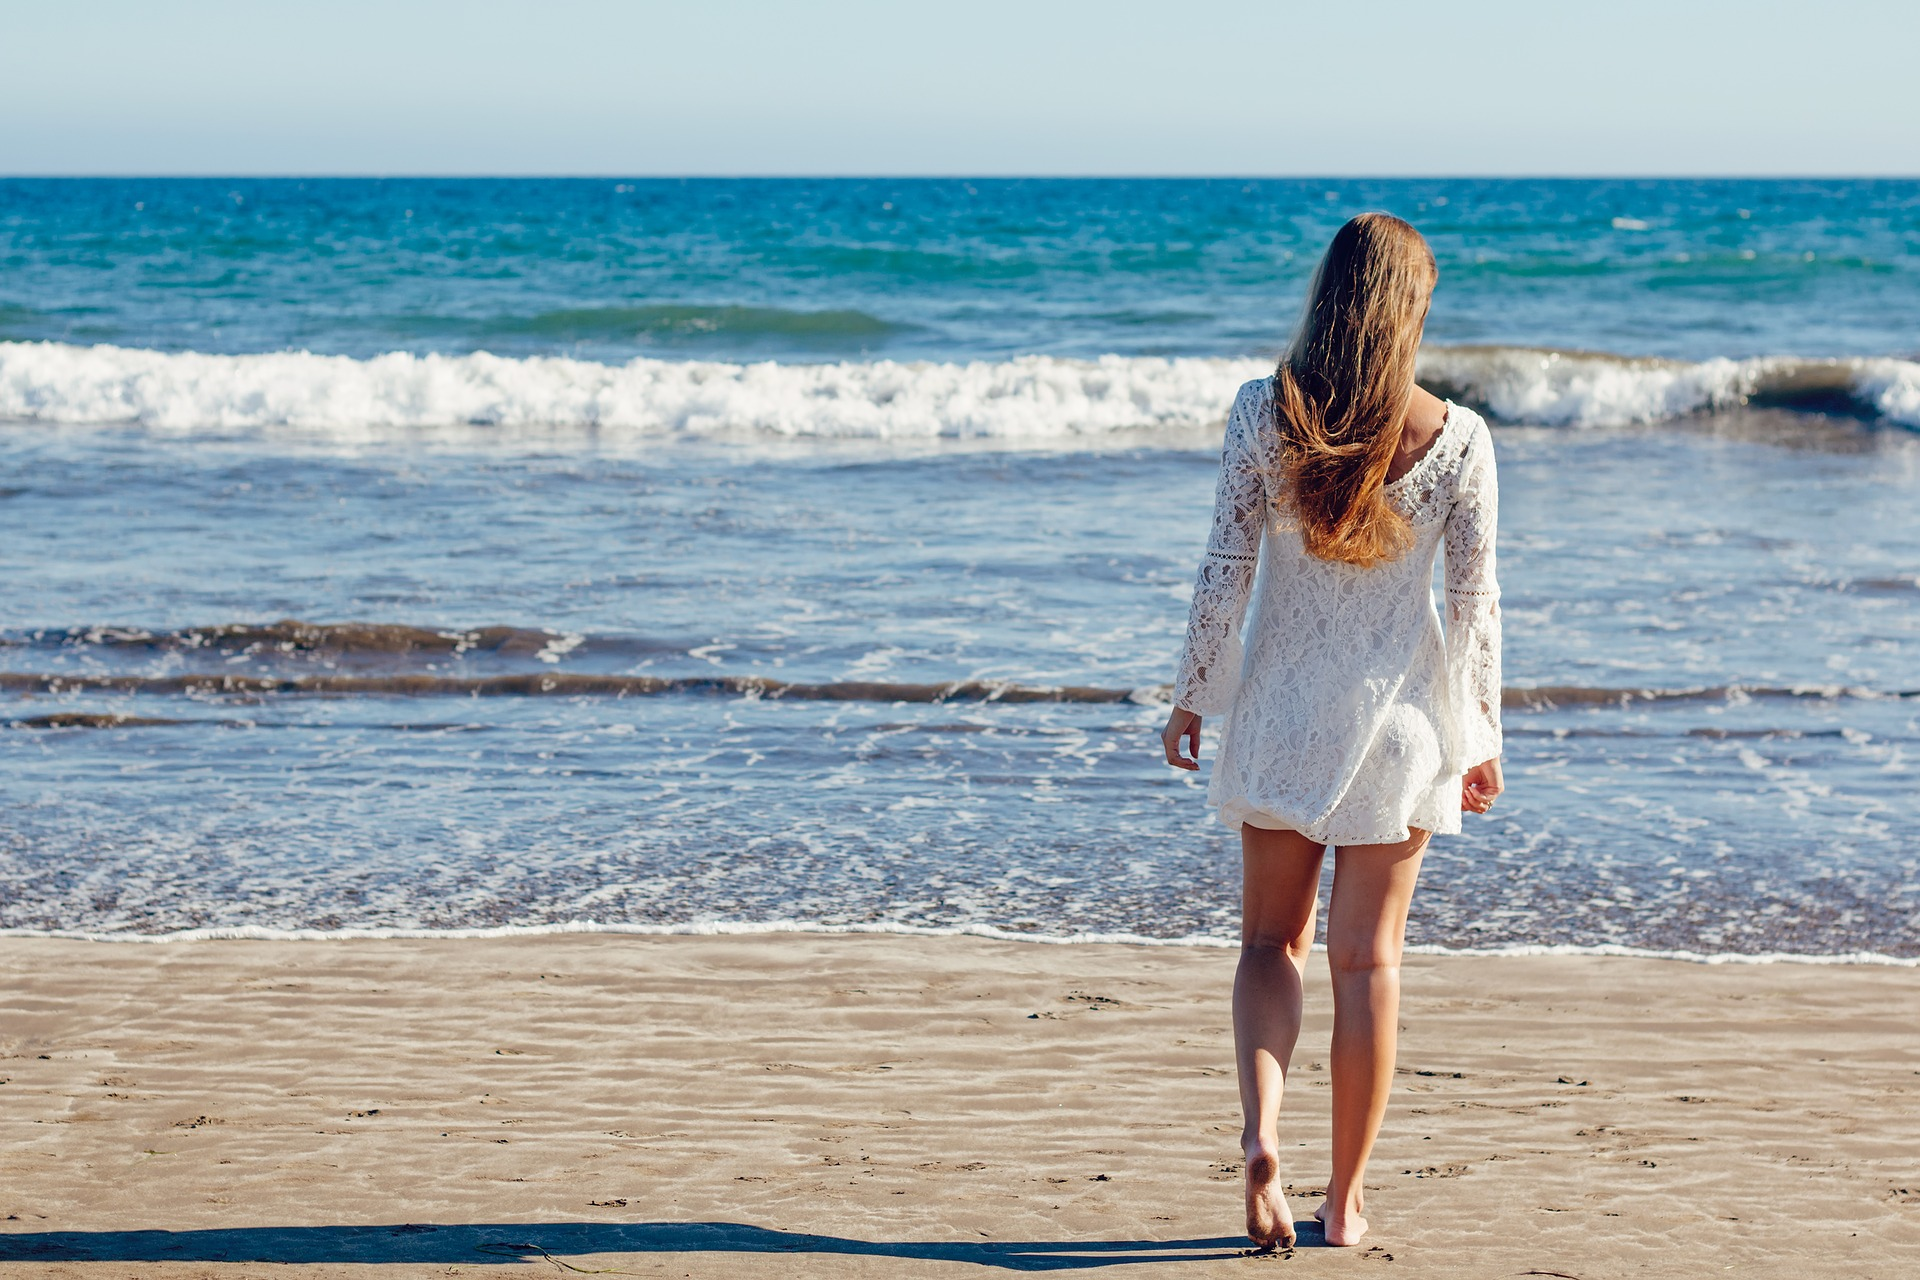 Lady walking on beach